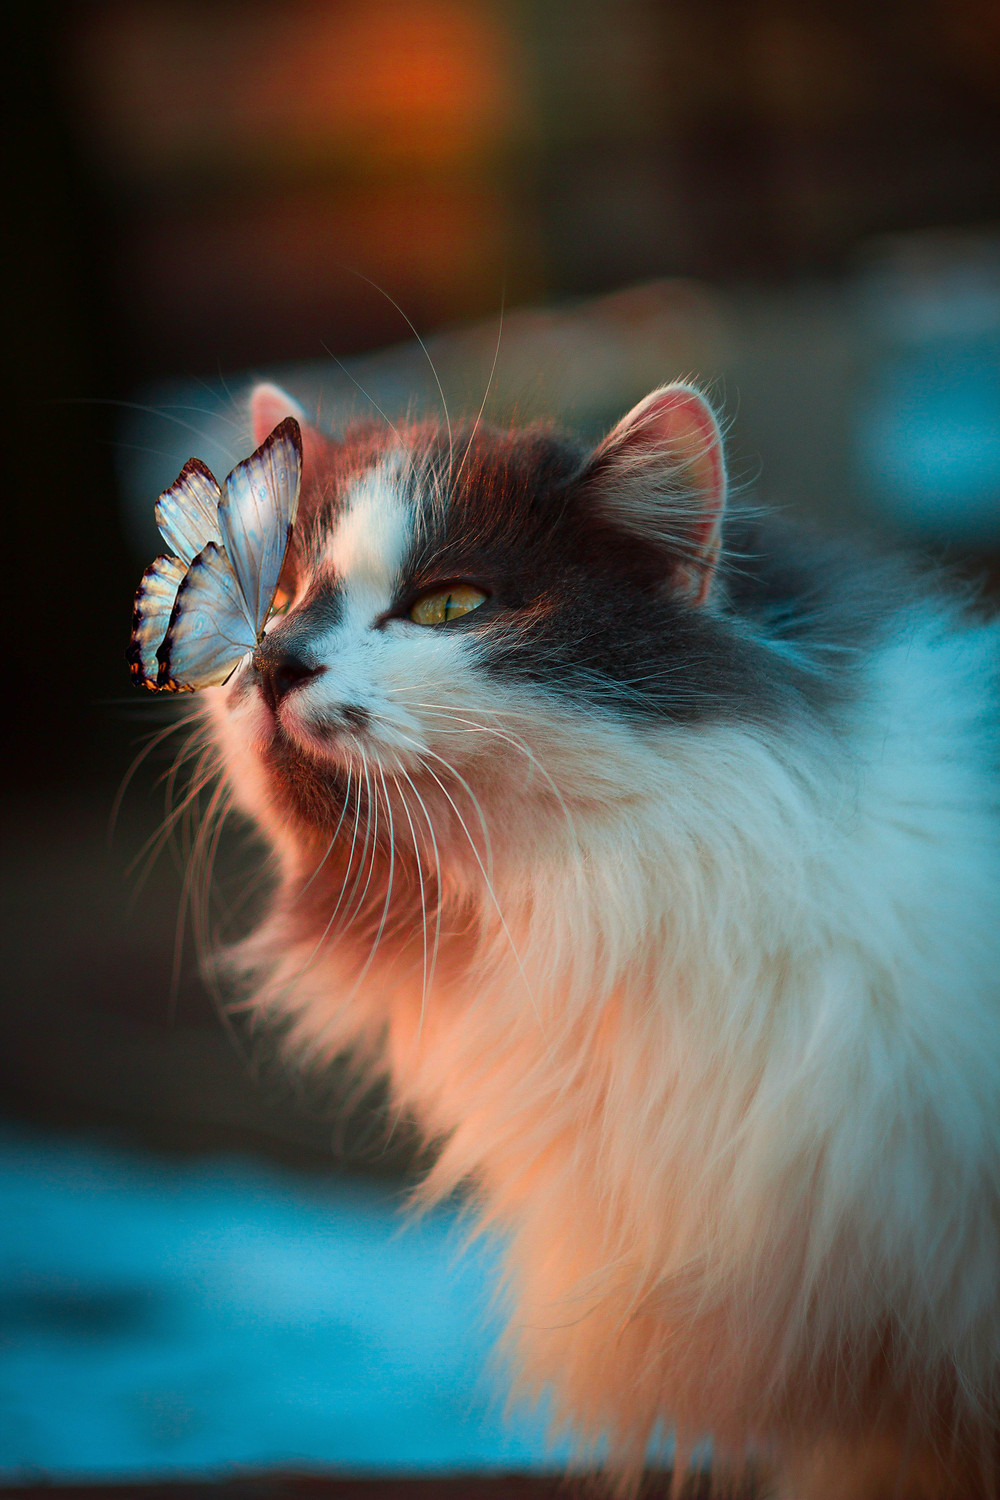 This is an image of a cat with a butterfly on its nose.